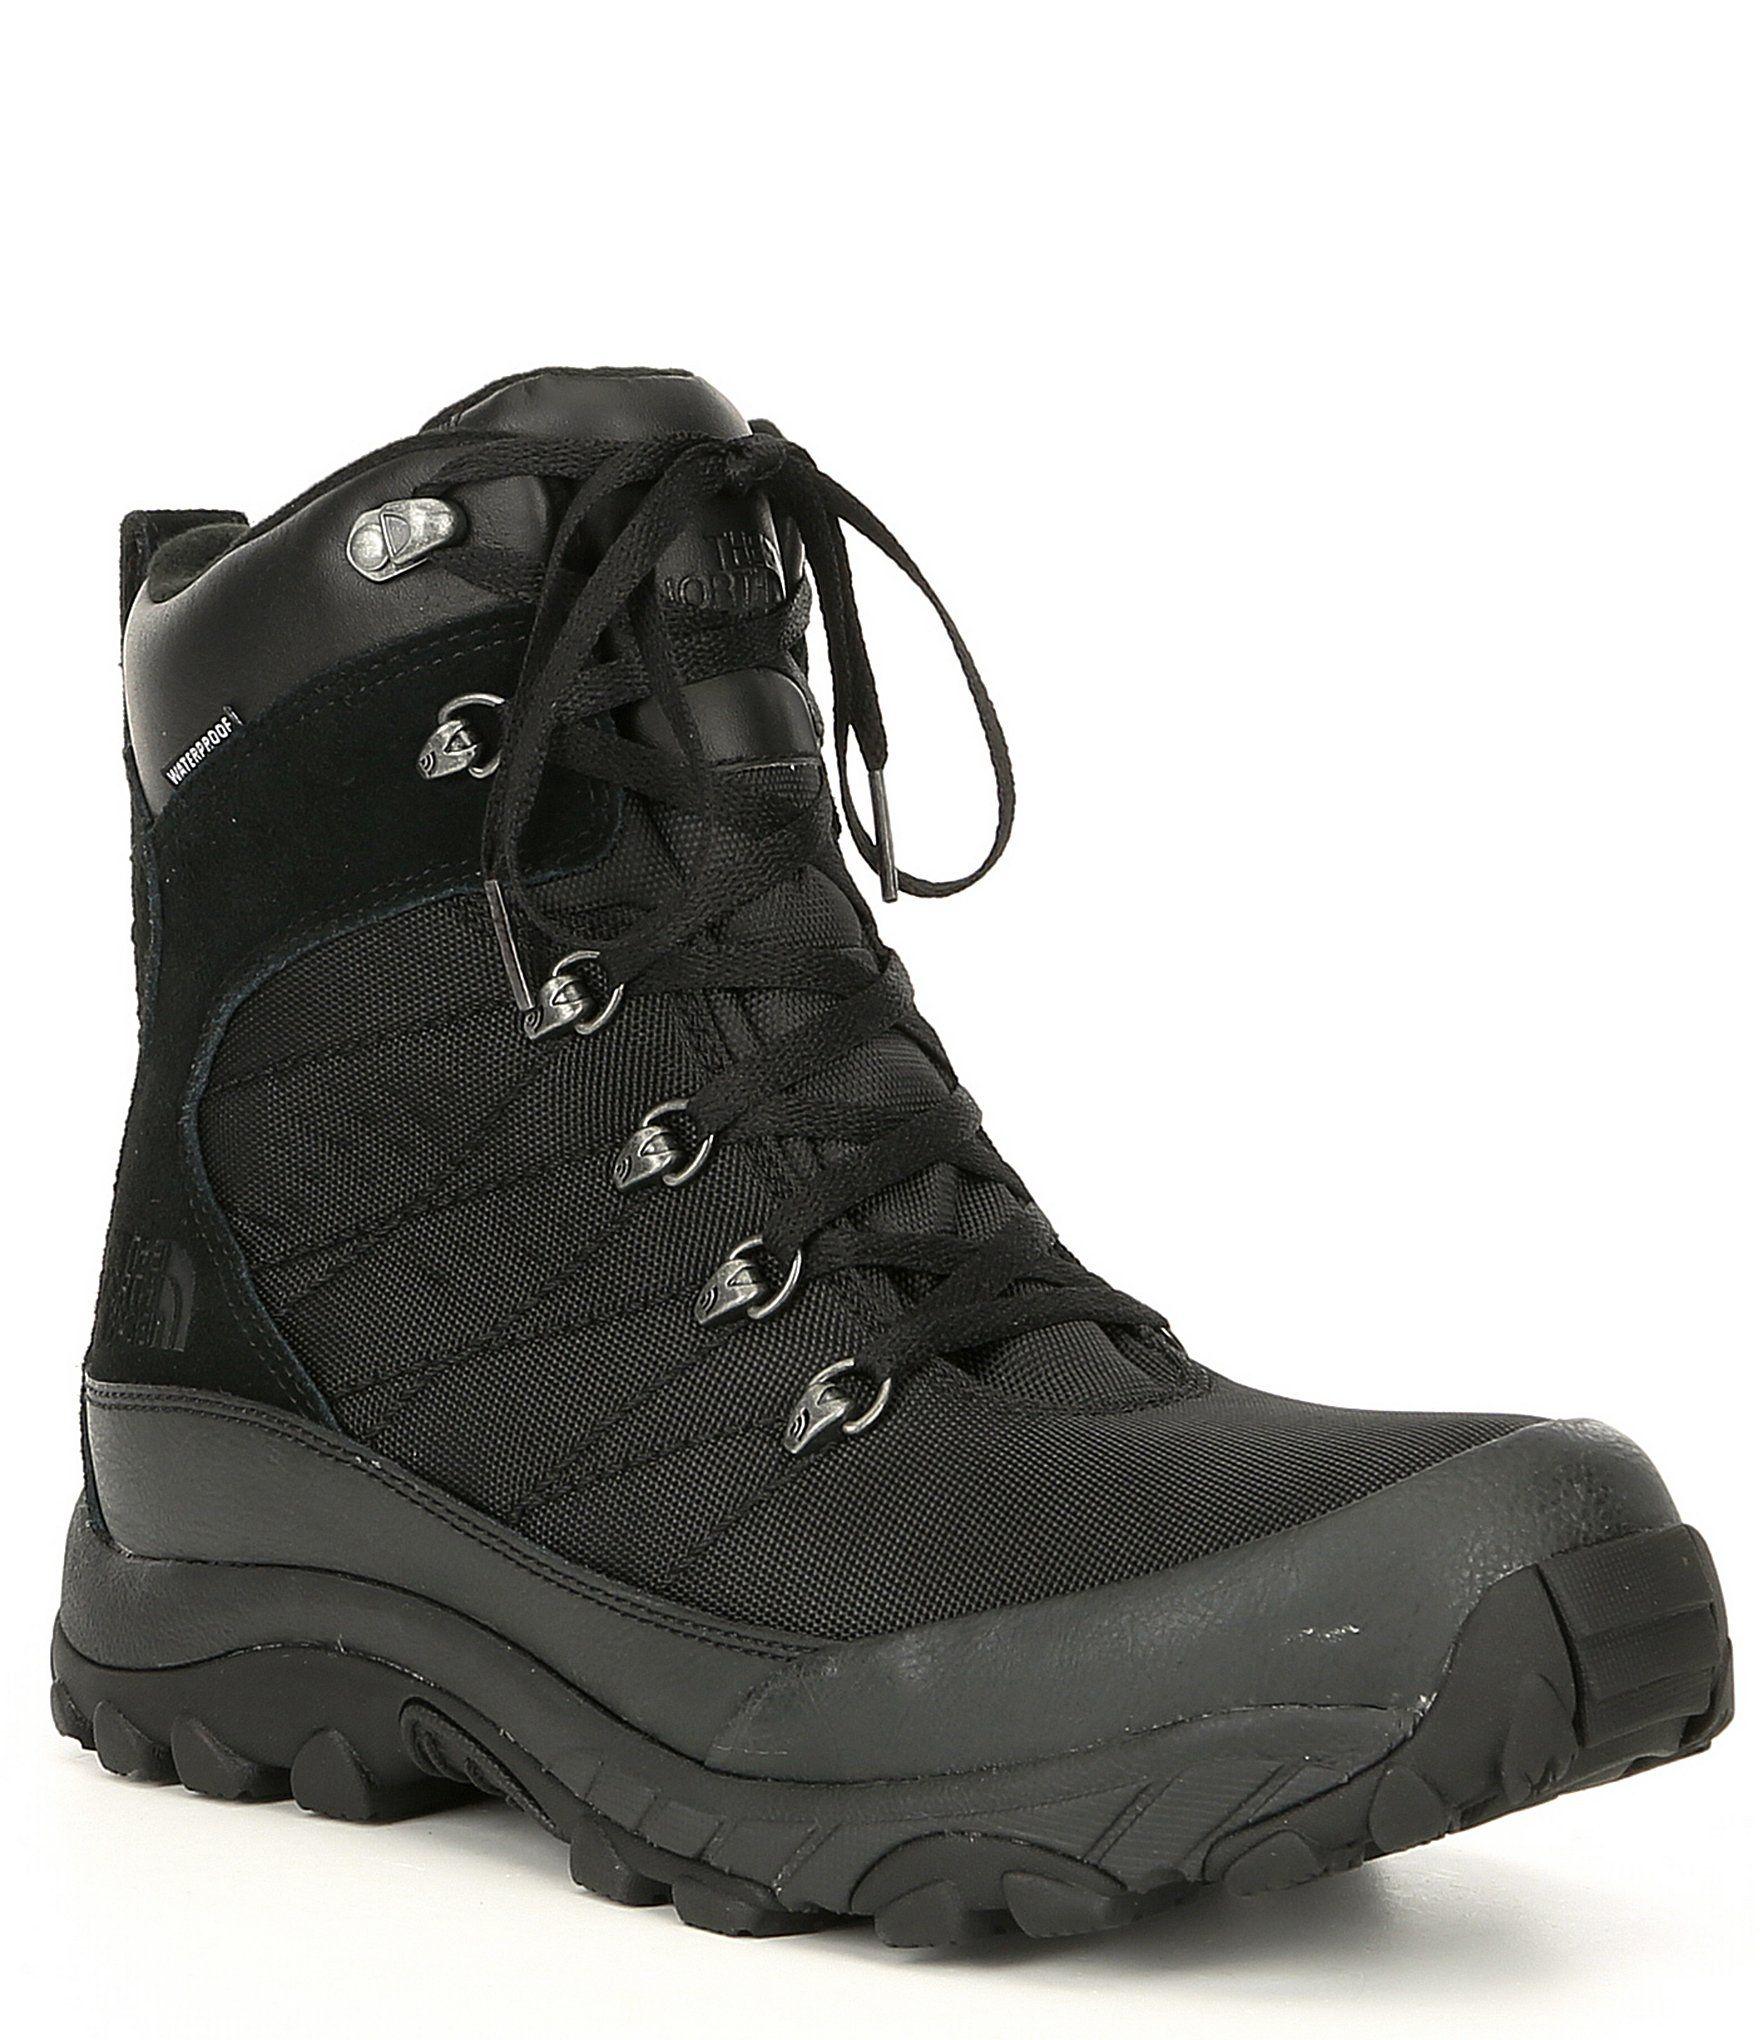 The North Face Men's Chilkat Nylon Waterproof Winter Boots – TNF Black 7.5M